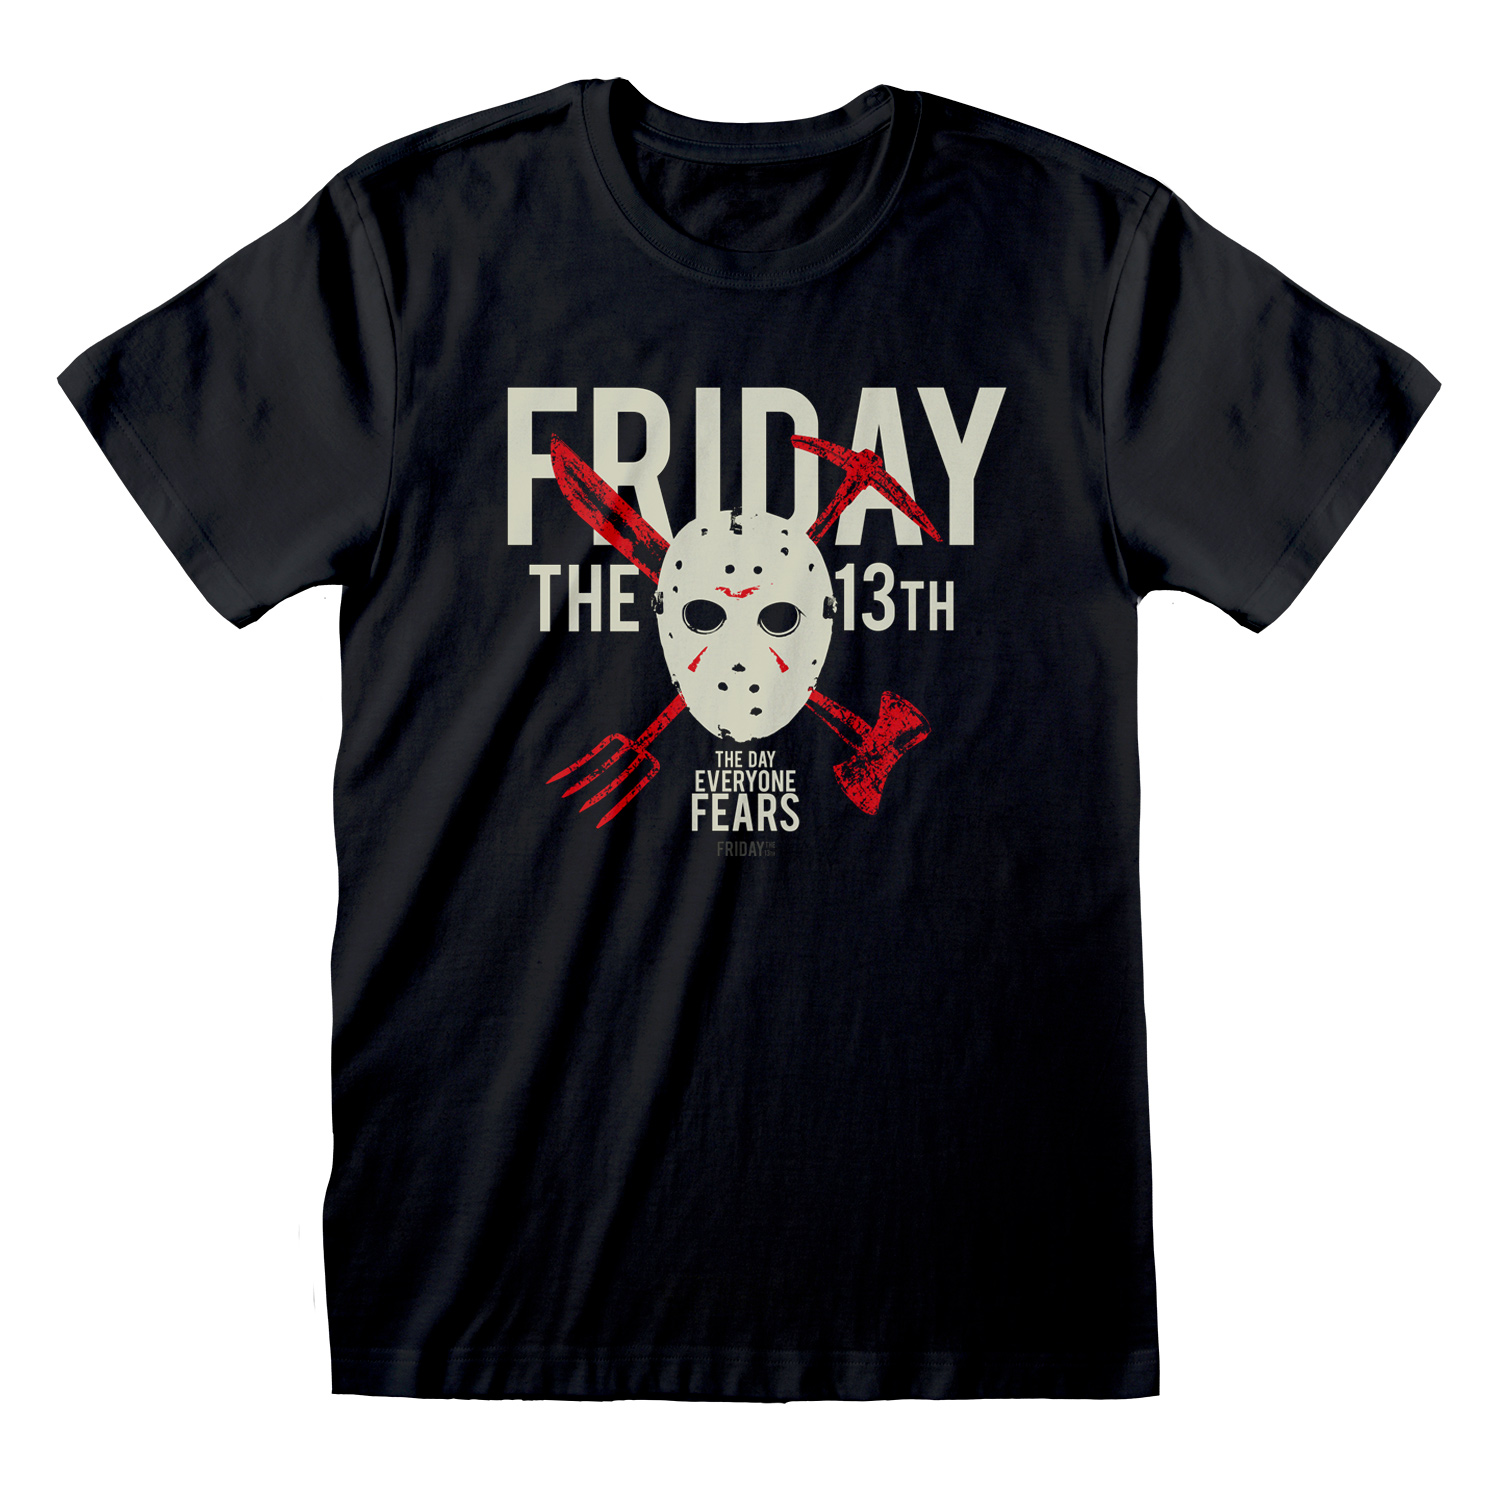 Friday the 13th - Venerd� 13 - The day everyone dies